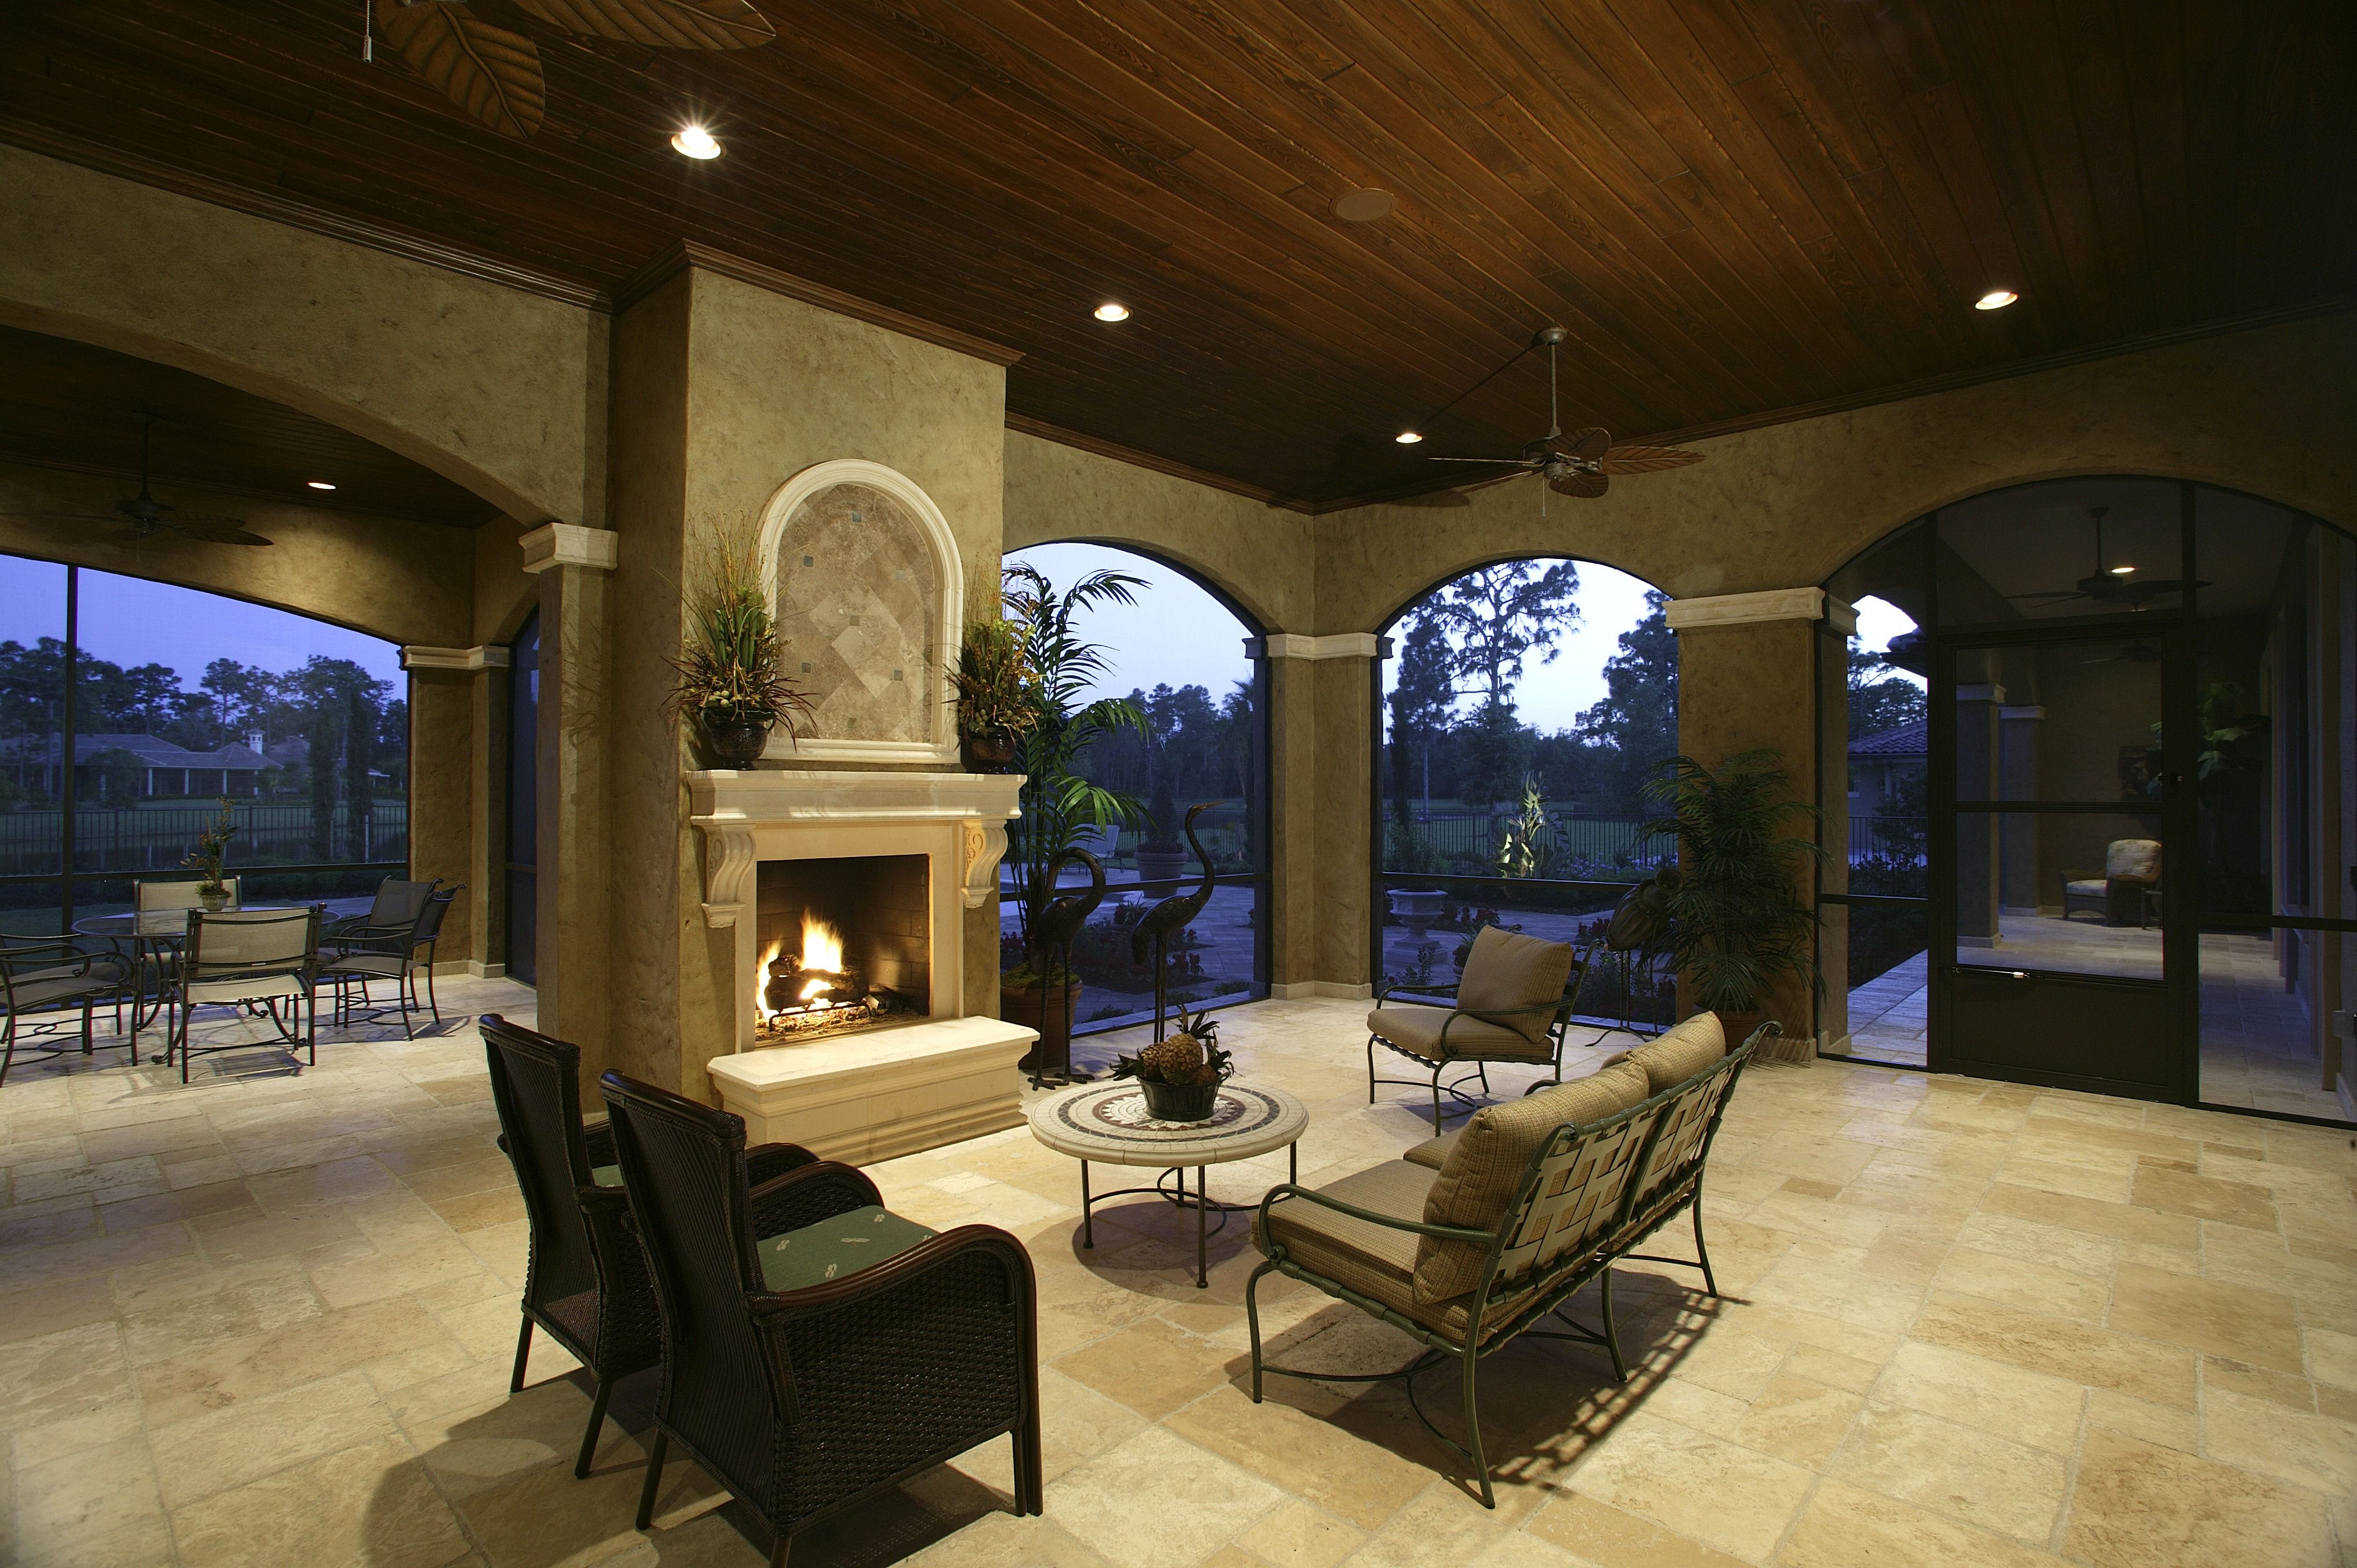 Fireplace chimney costs installing a fireplace patio